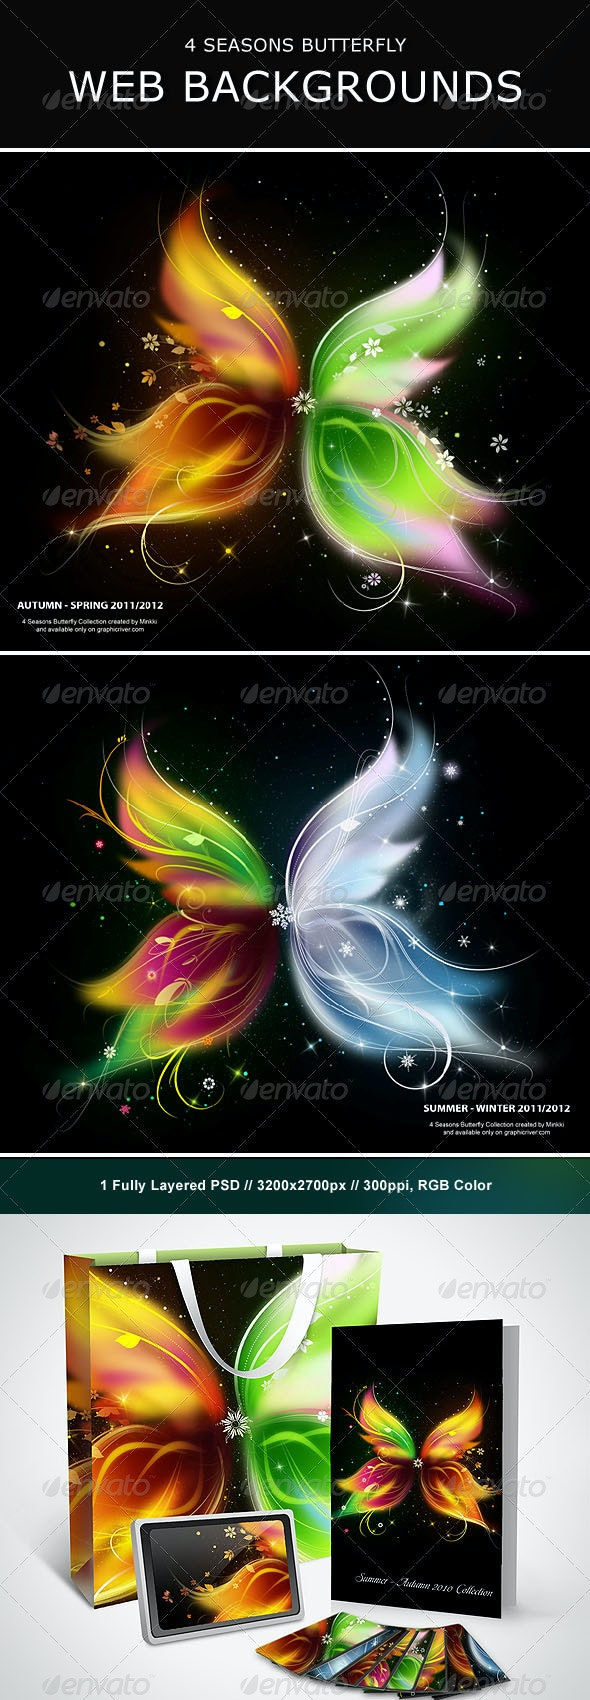 4 Seasons Butterfly Web Backgrounds - Backgrounds Graphics